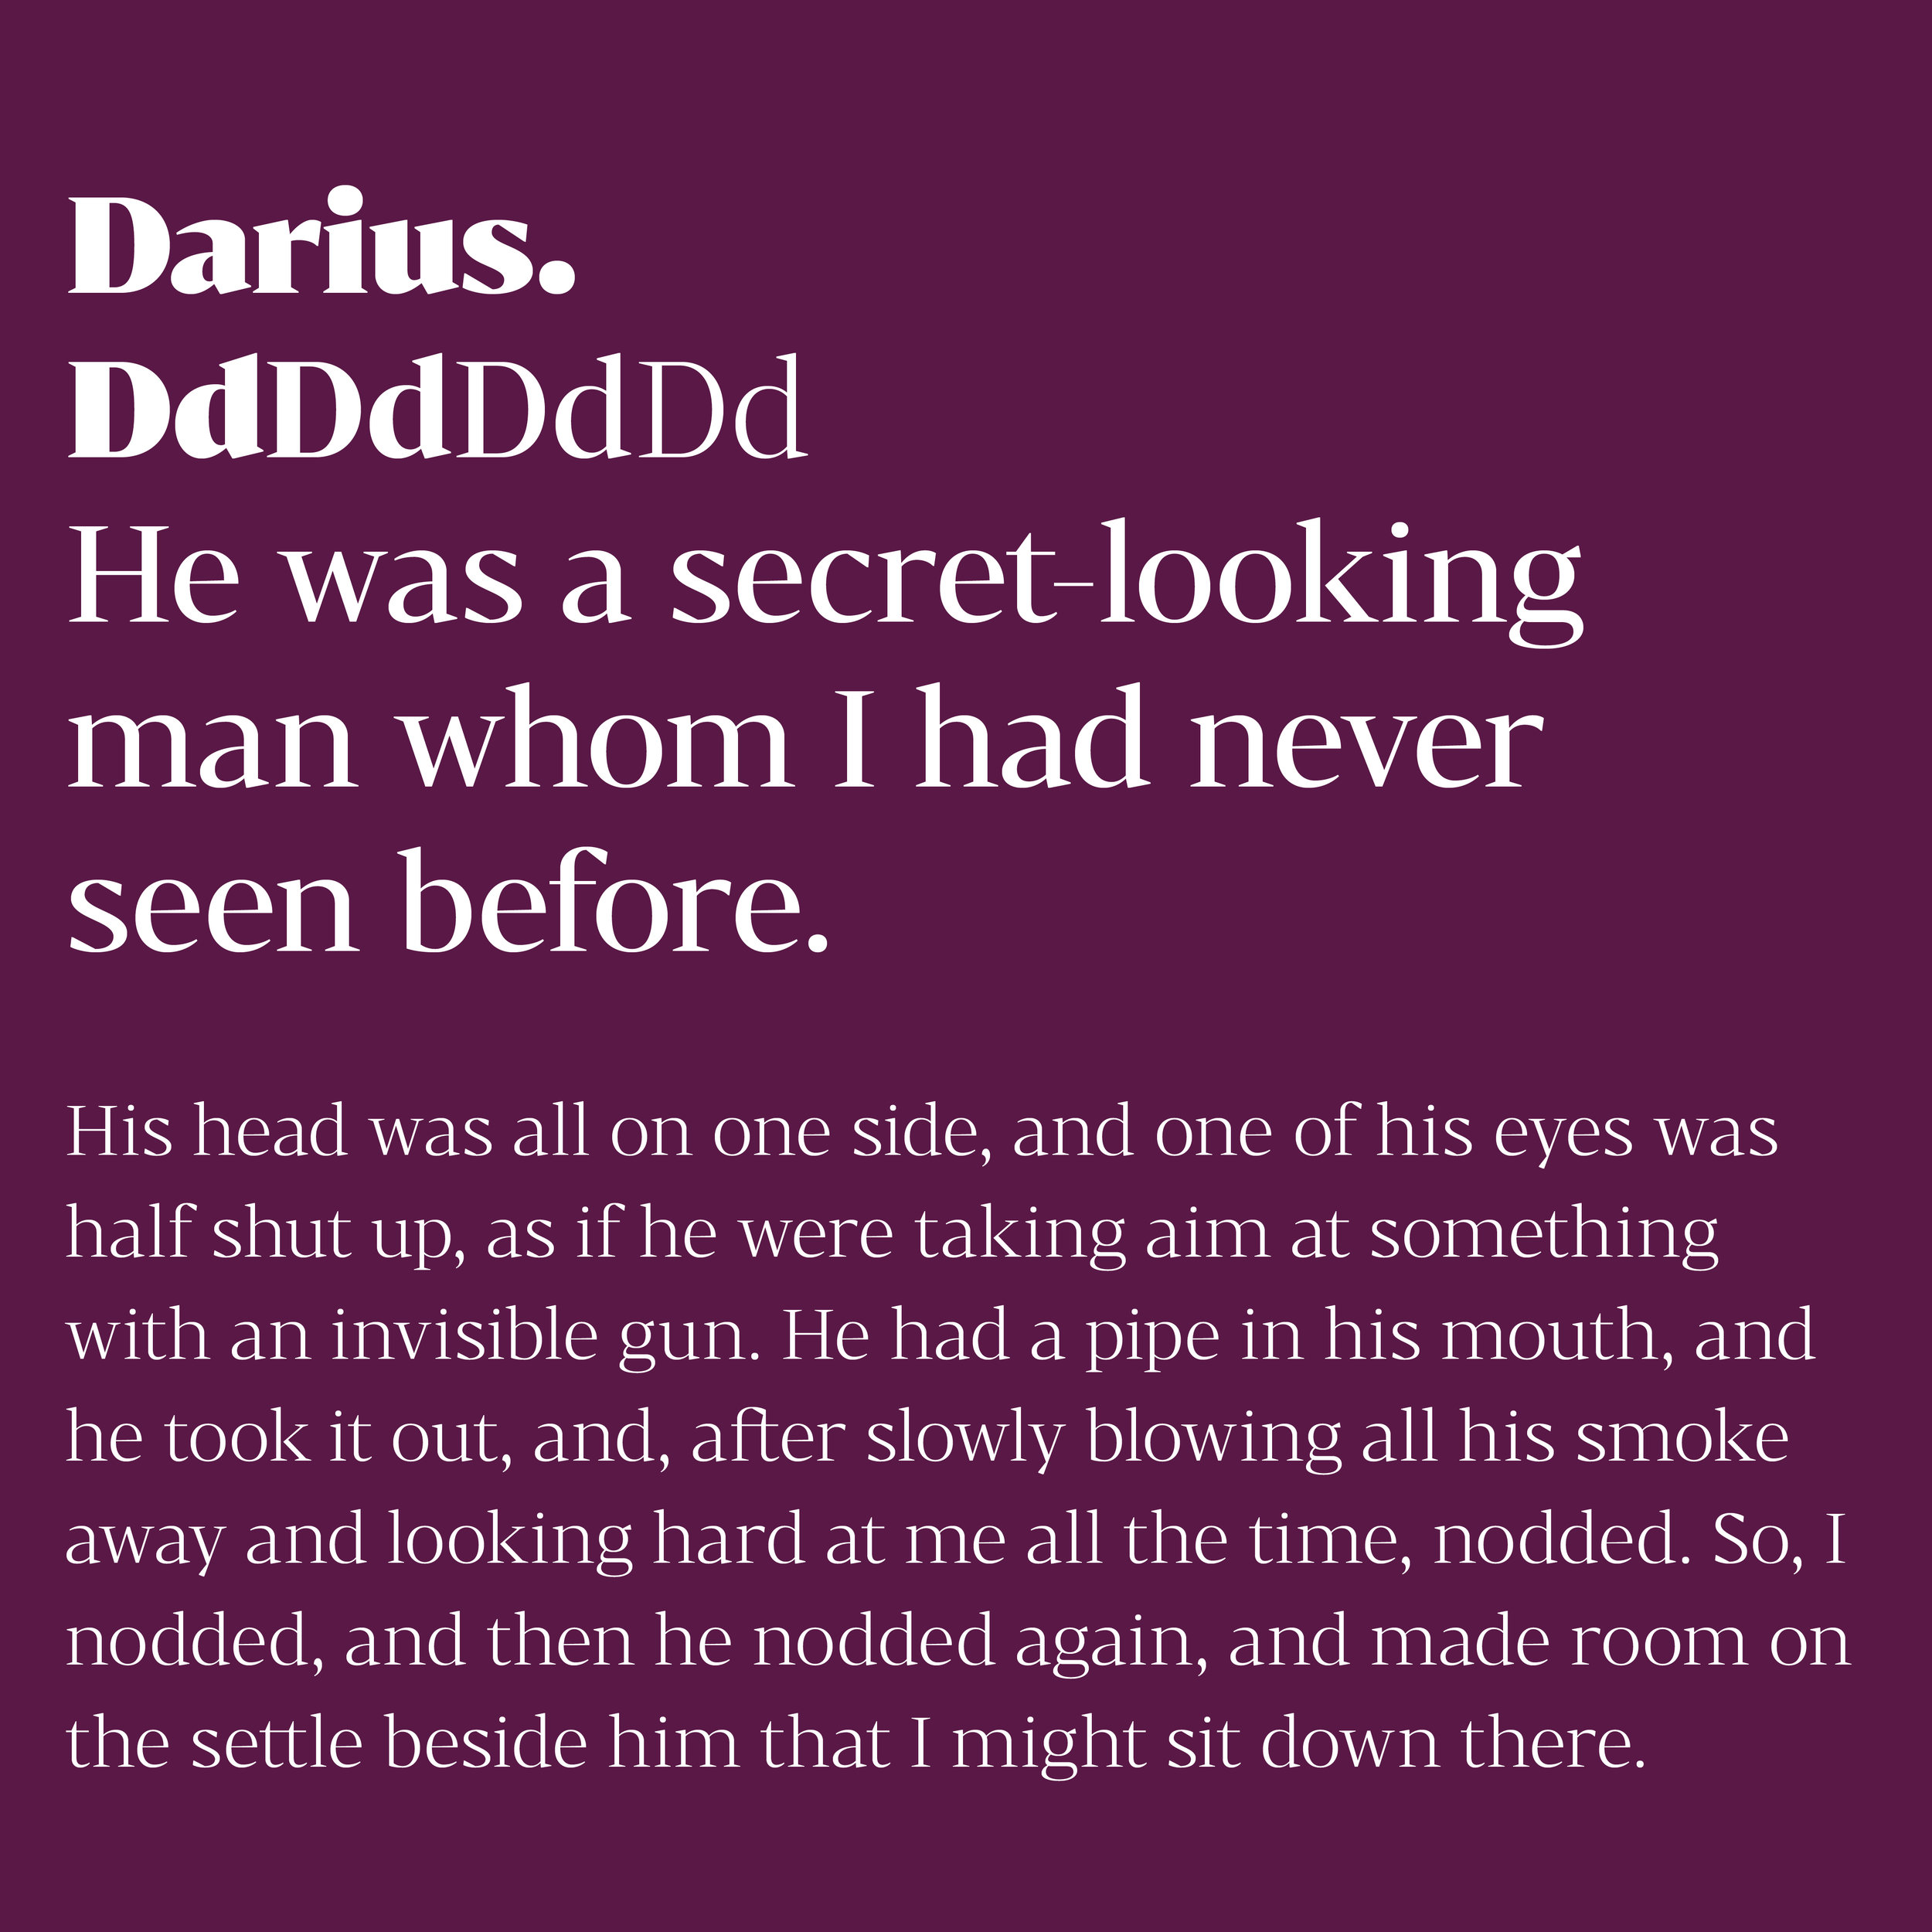 Bw Darius is an elegant wedge serif typeface, halfway between the transitional and didone genres, with a sharper approach to terminals without falling on the stiffness of the didones. The wide skeleton, modern proportions and high contrast, all contribute to the opulent personality of this font.